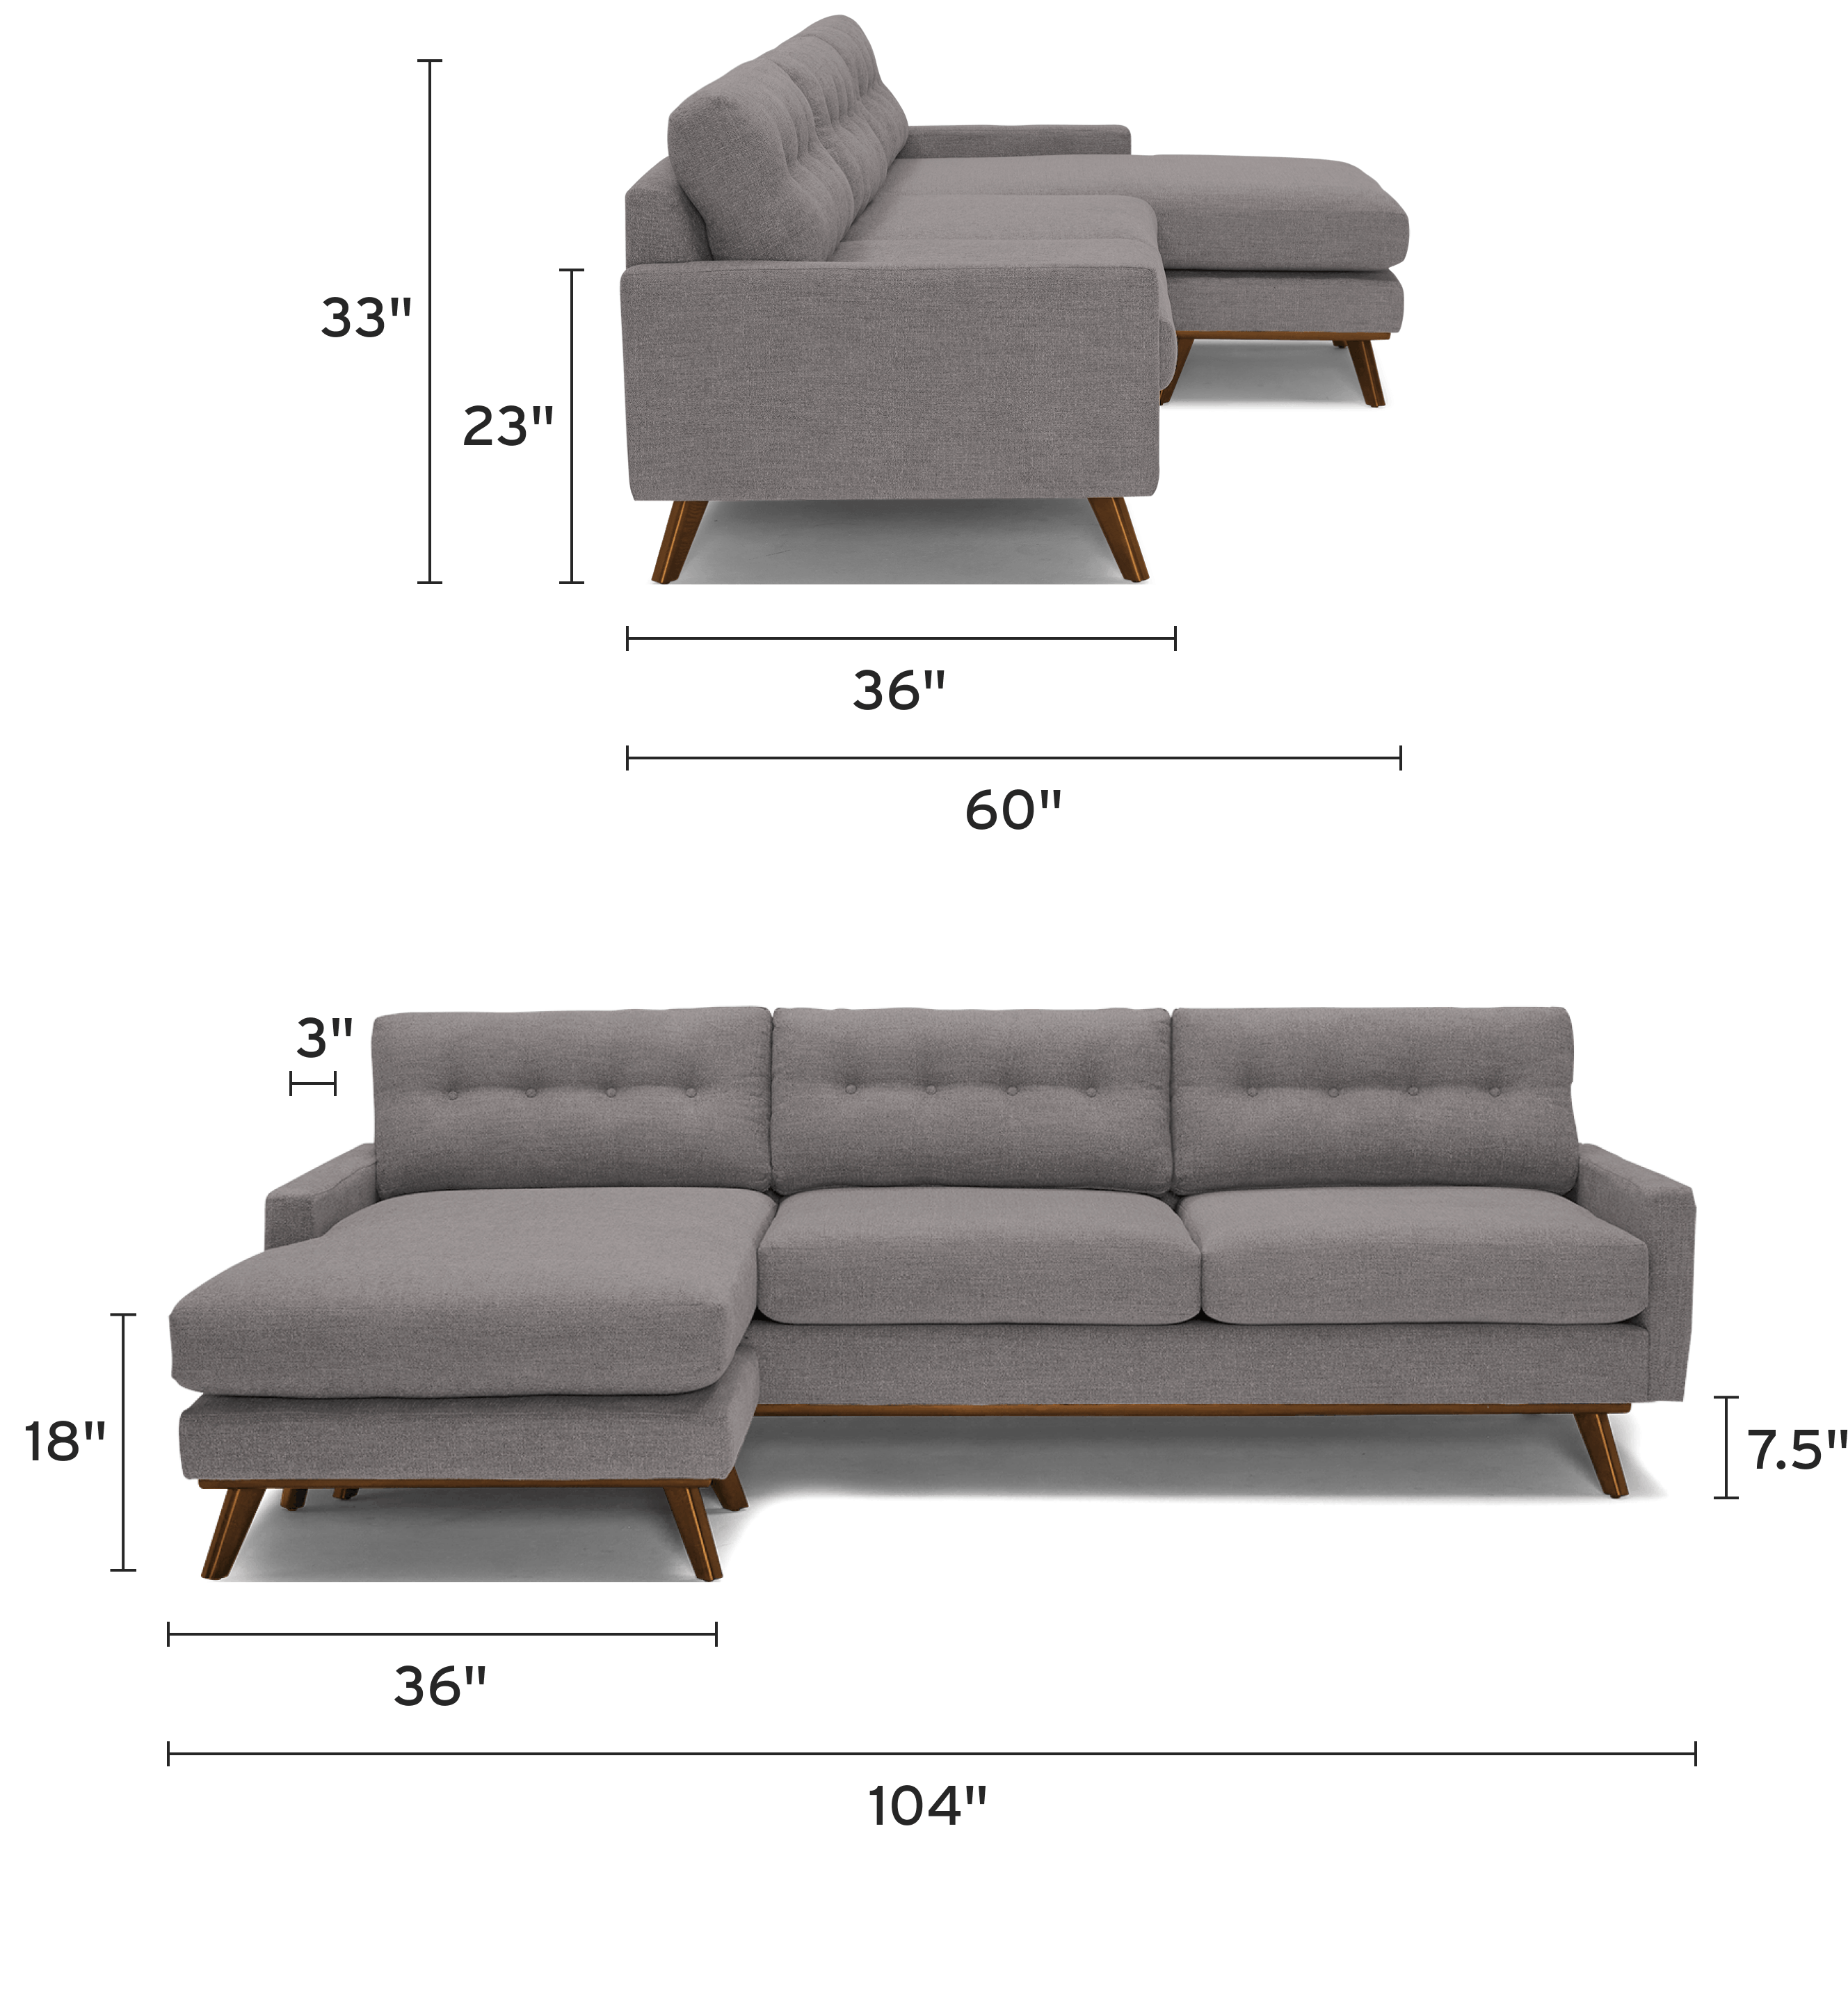 hopson reversible sectional mobile dimensional image